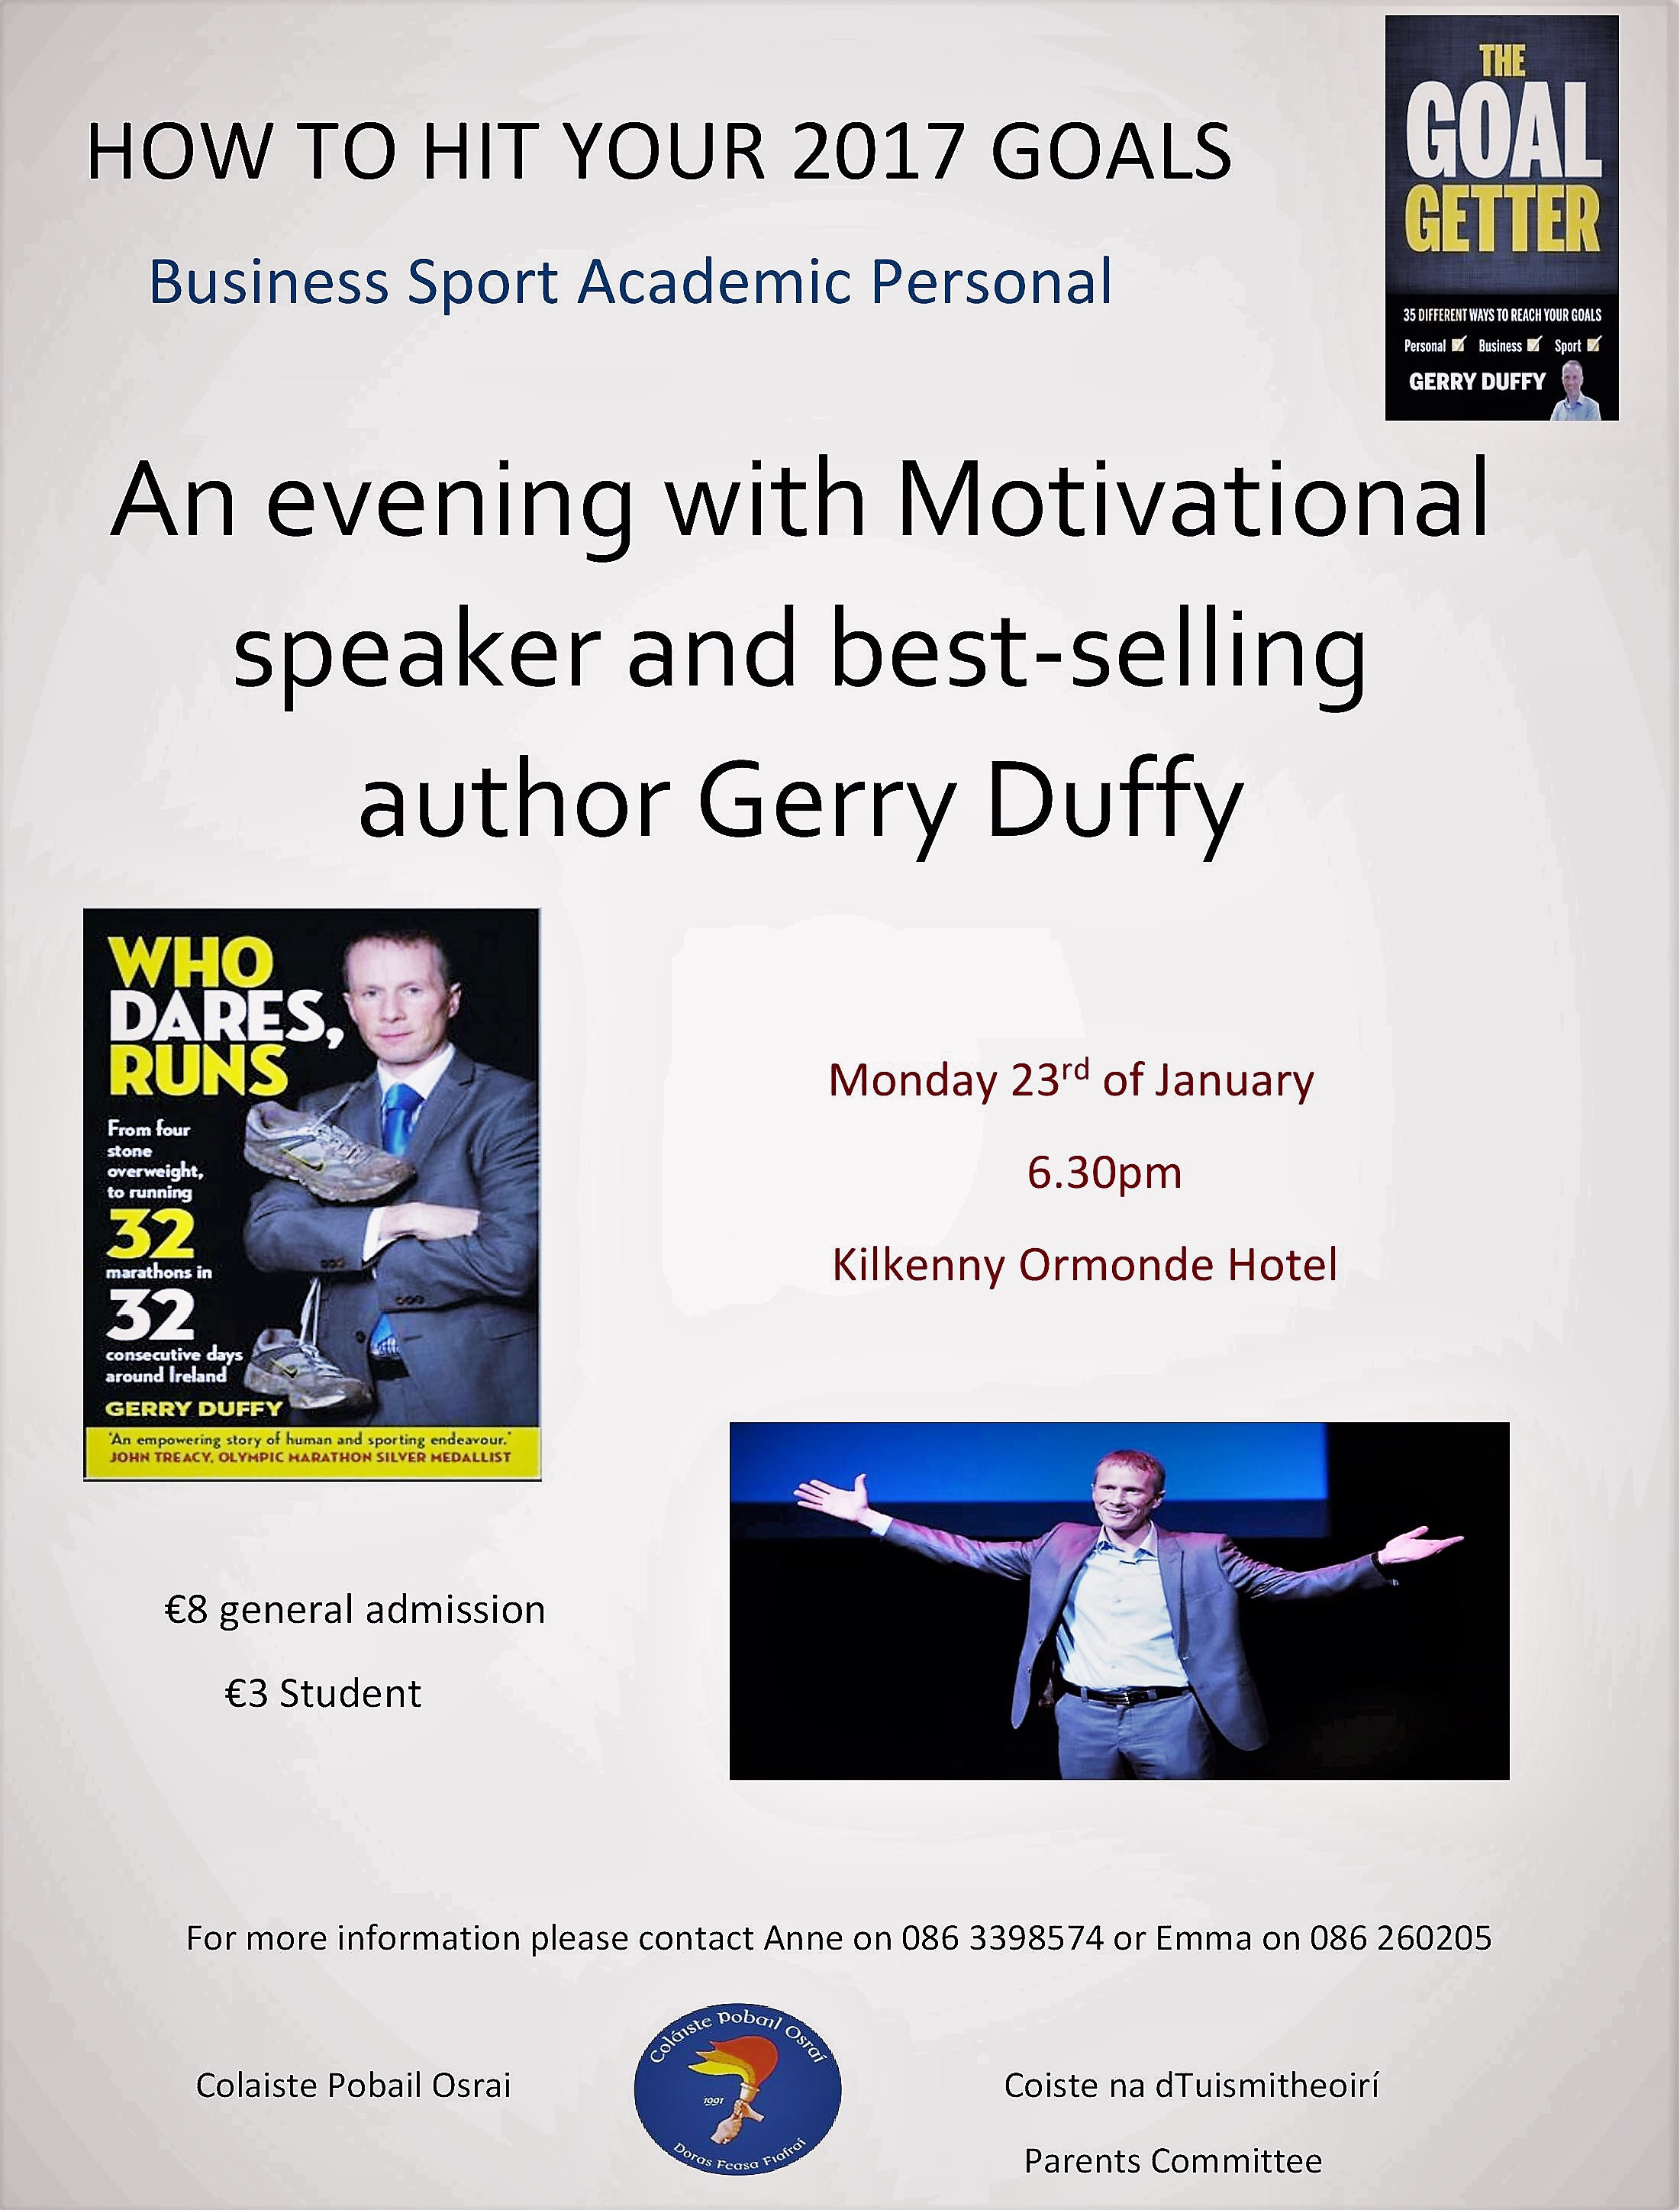 Gerry Duffy -Speaking Monday 23rd 6.30pm at the Ormonde Hotel